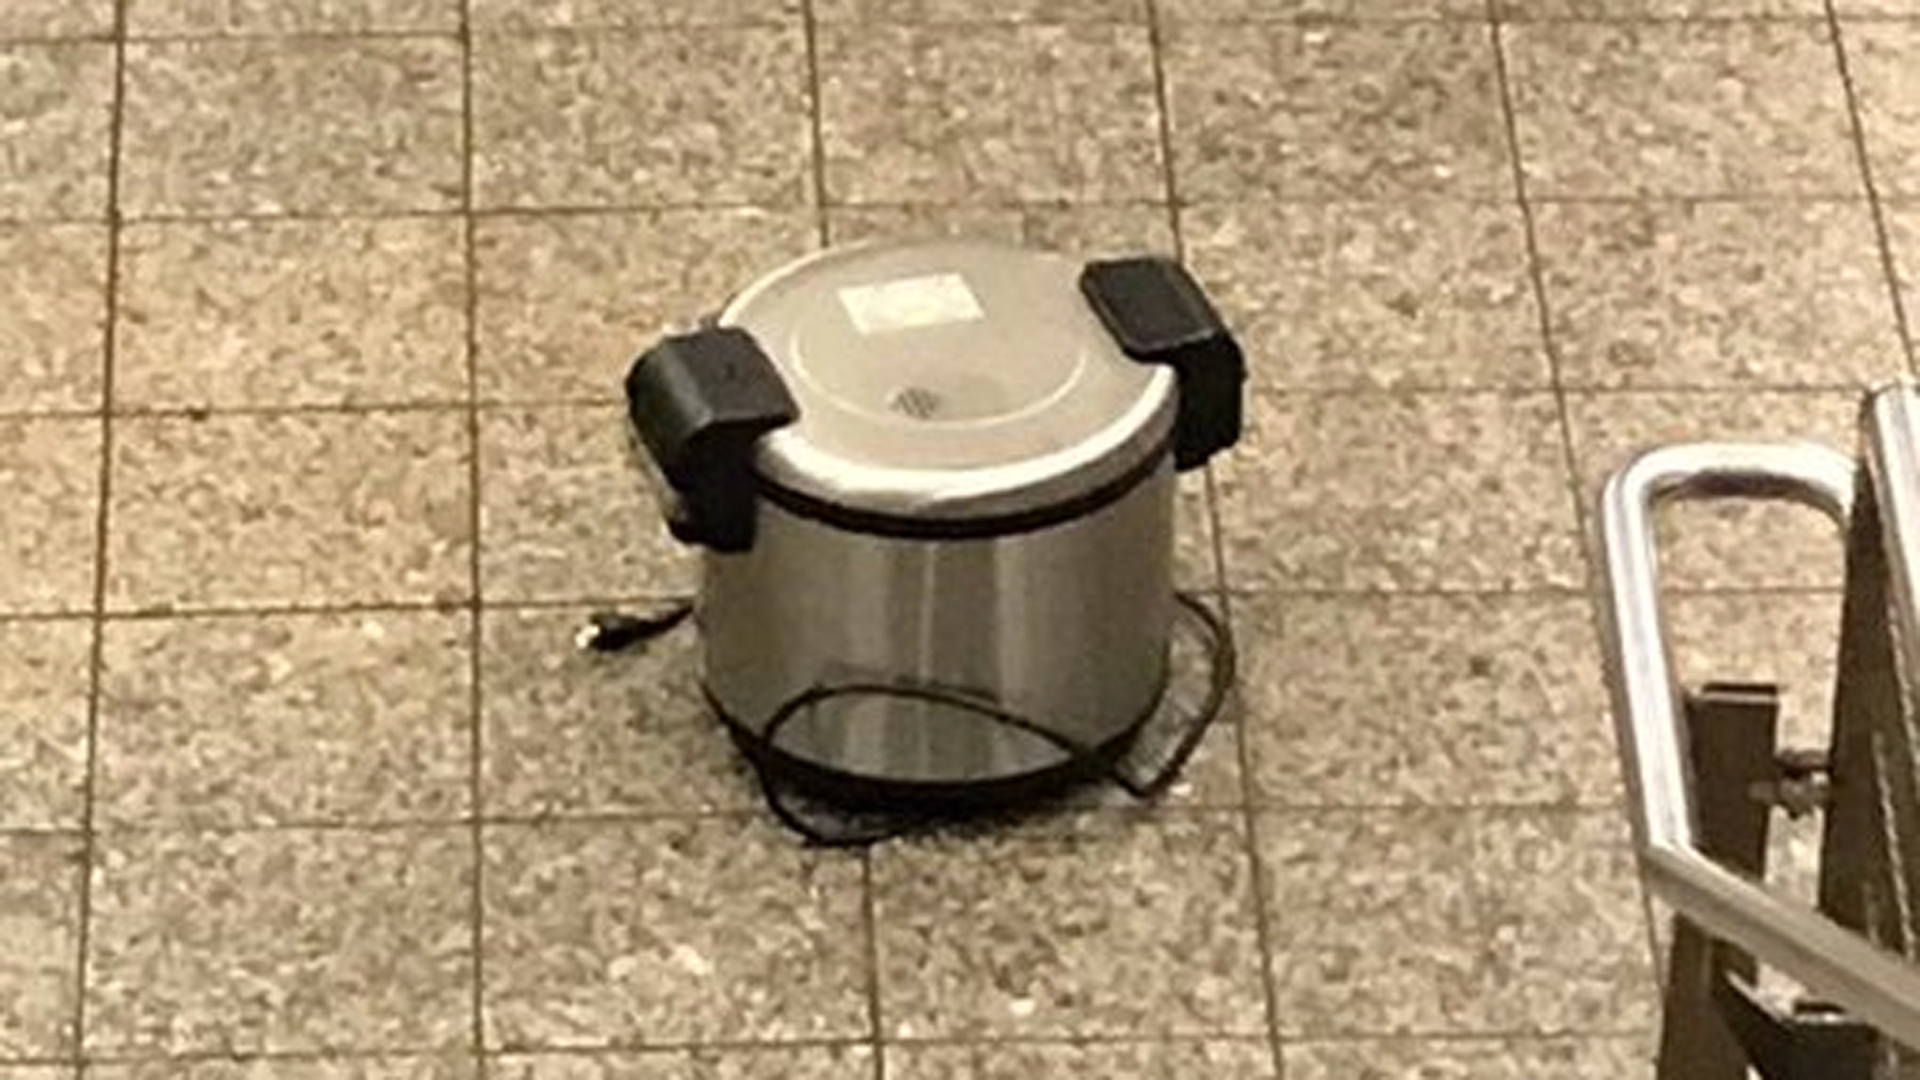 One of the suspicious devices is seen in a photo tweeted out by the New York Police Department.